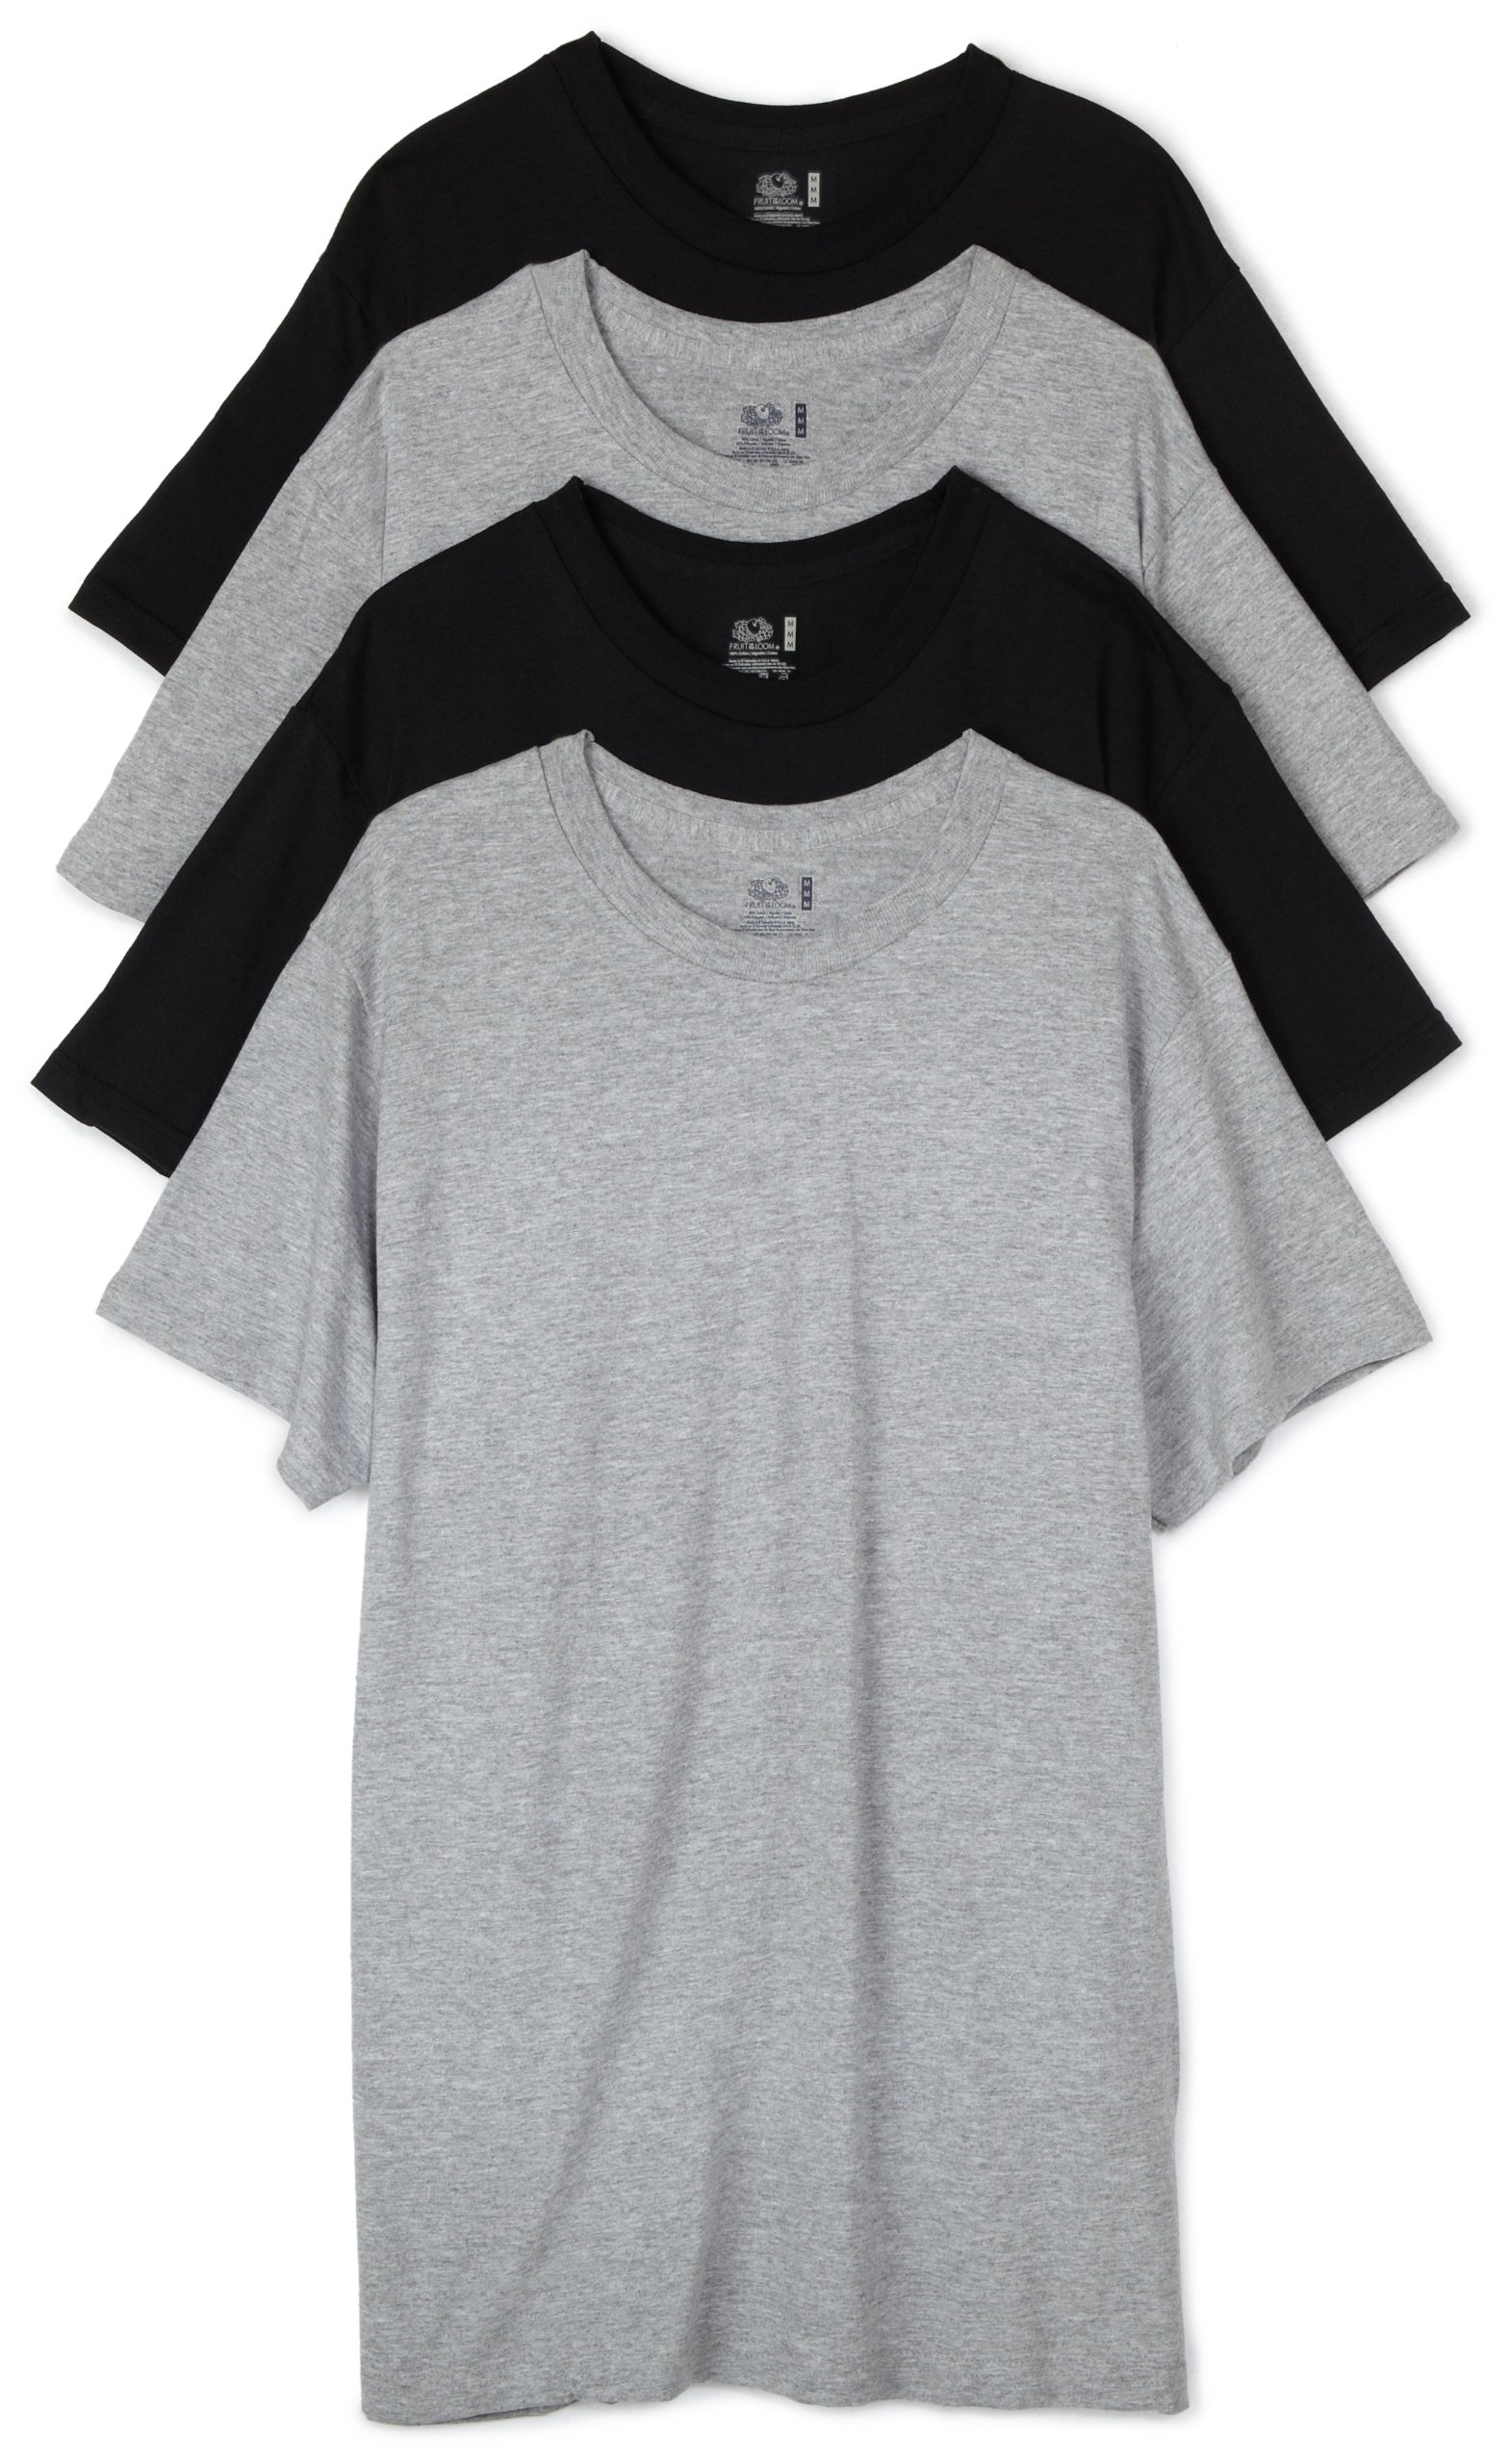 Fruit of the Loom Men's Crew Neck T-Shirt (Pack of 4), Black/Grey, Large